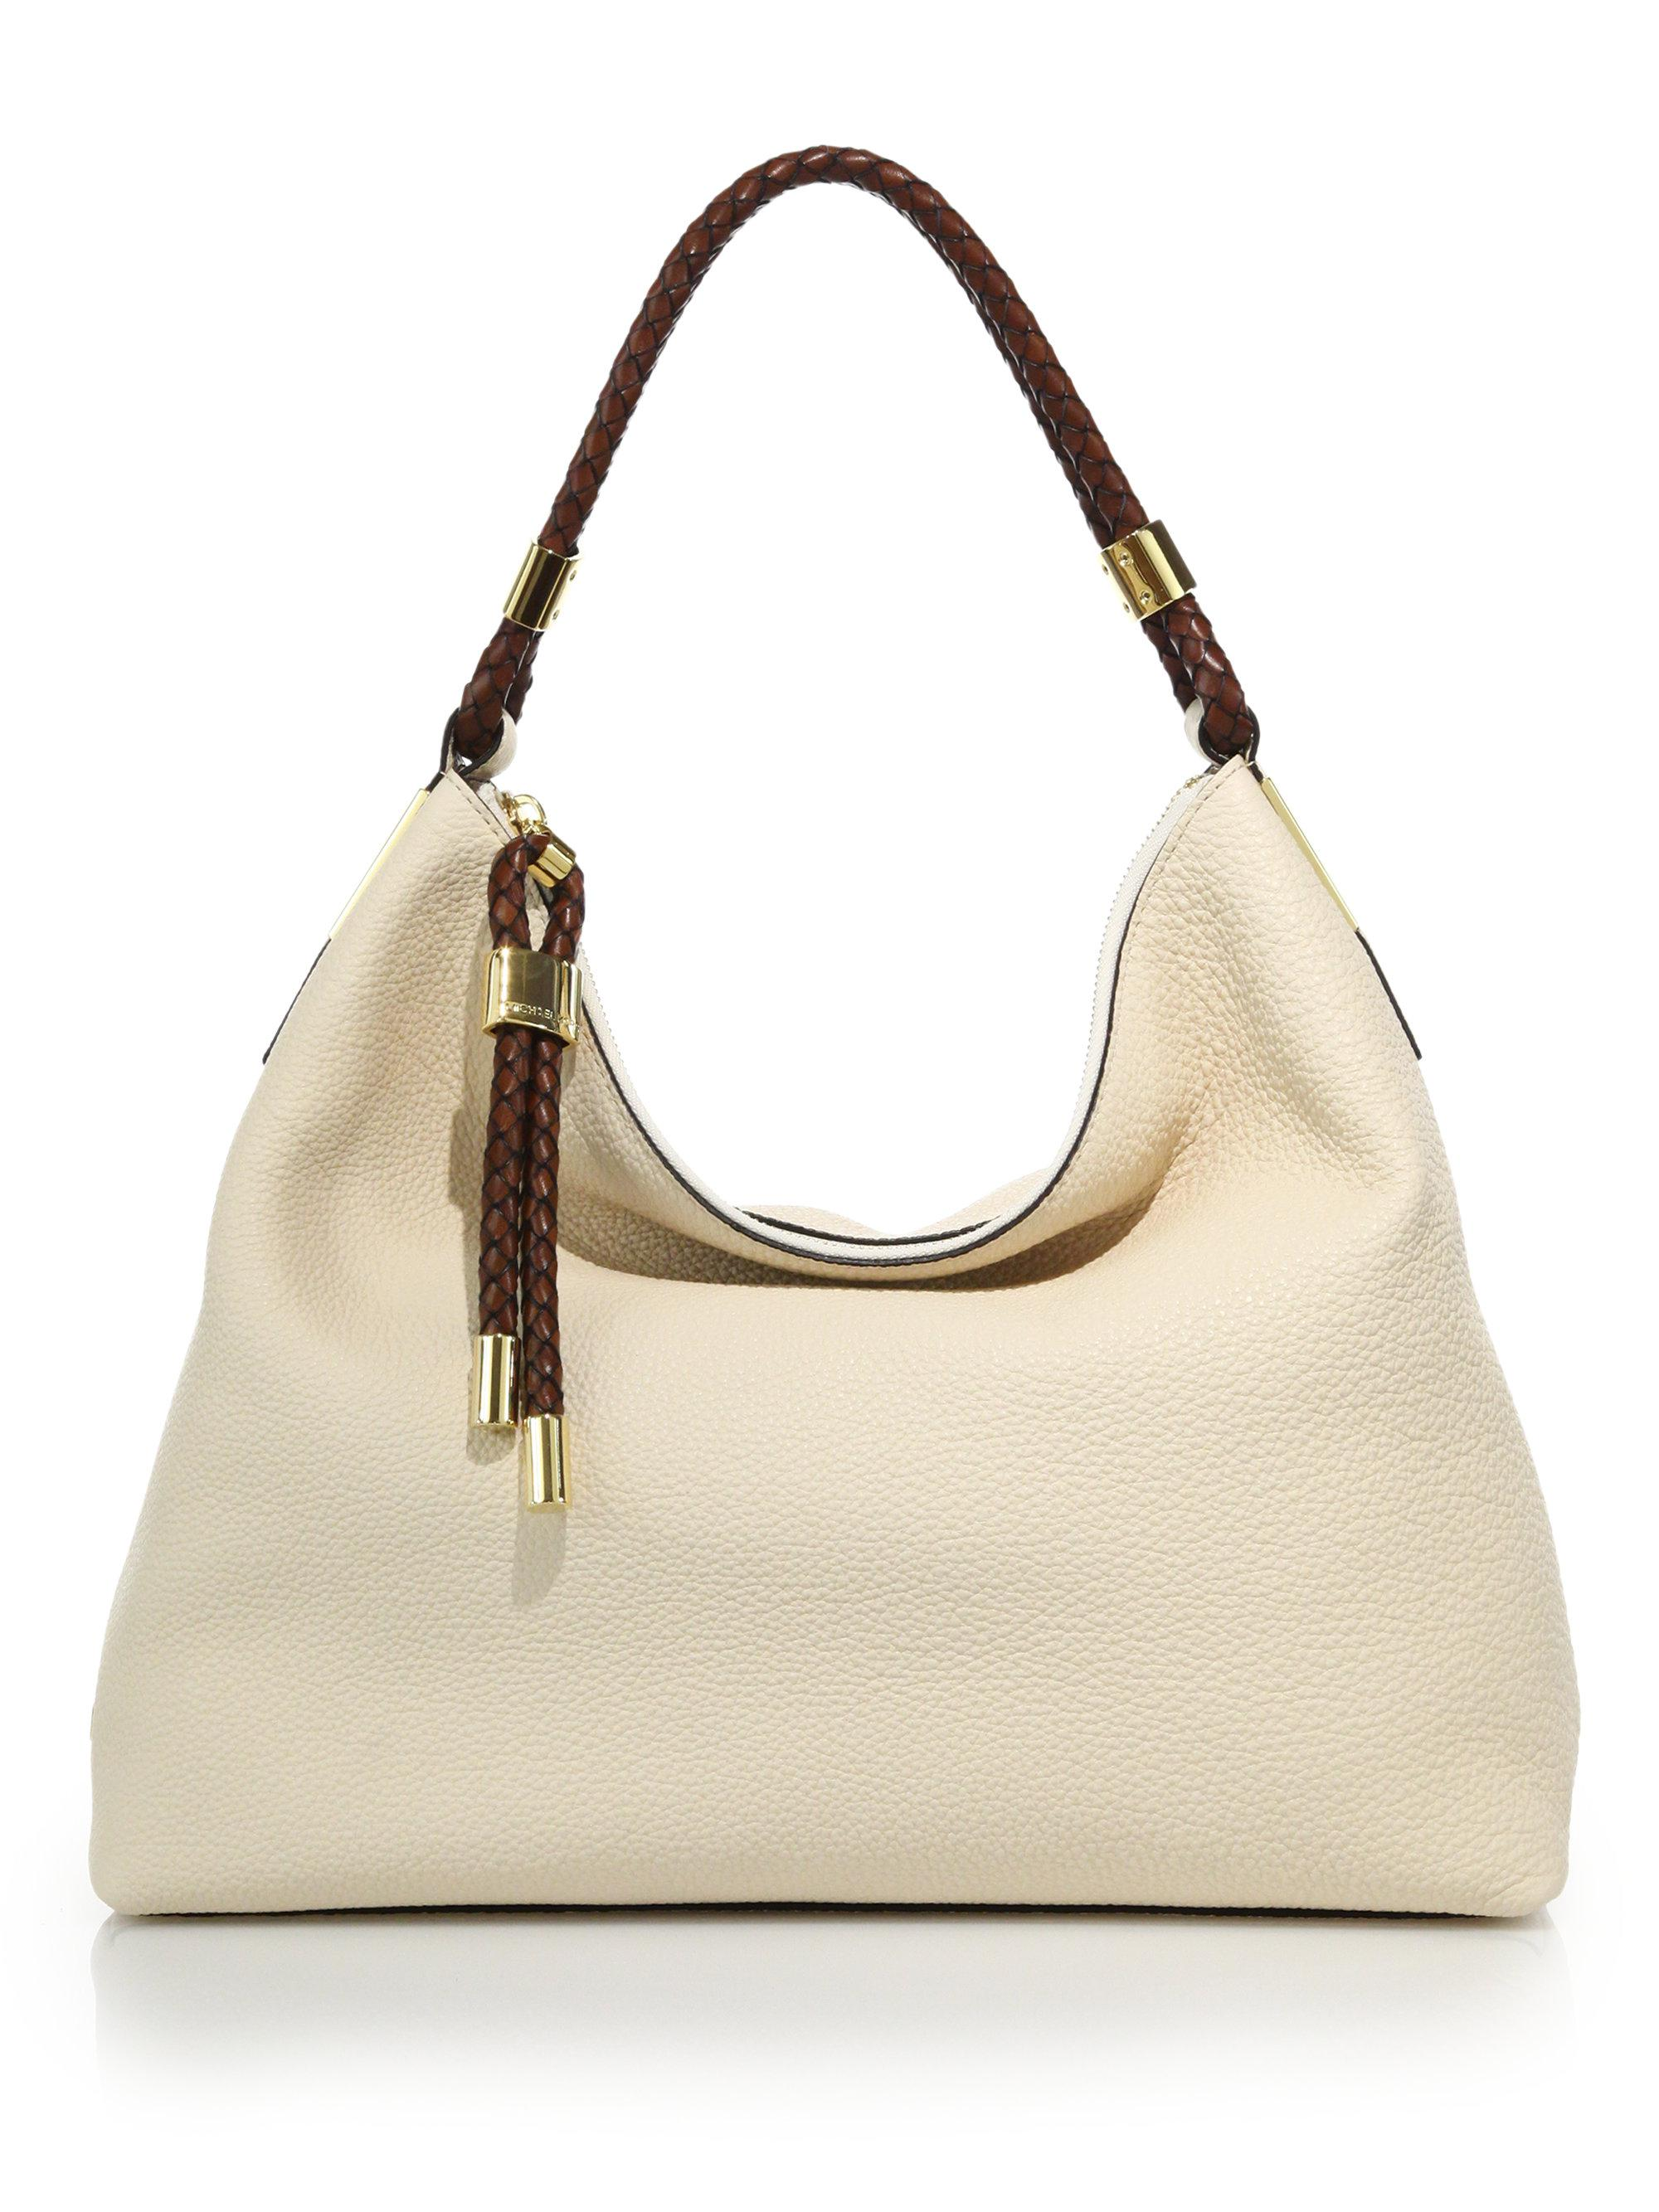 46329d68369e ... top zip leather shoulder bags chandler large leather totes crossbody  bags 8e4e7 discount code for michael kors. womens natural skorpios small  crossbody ...